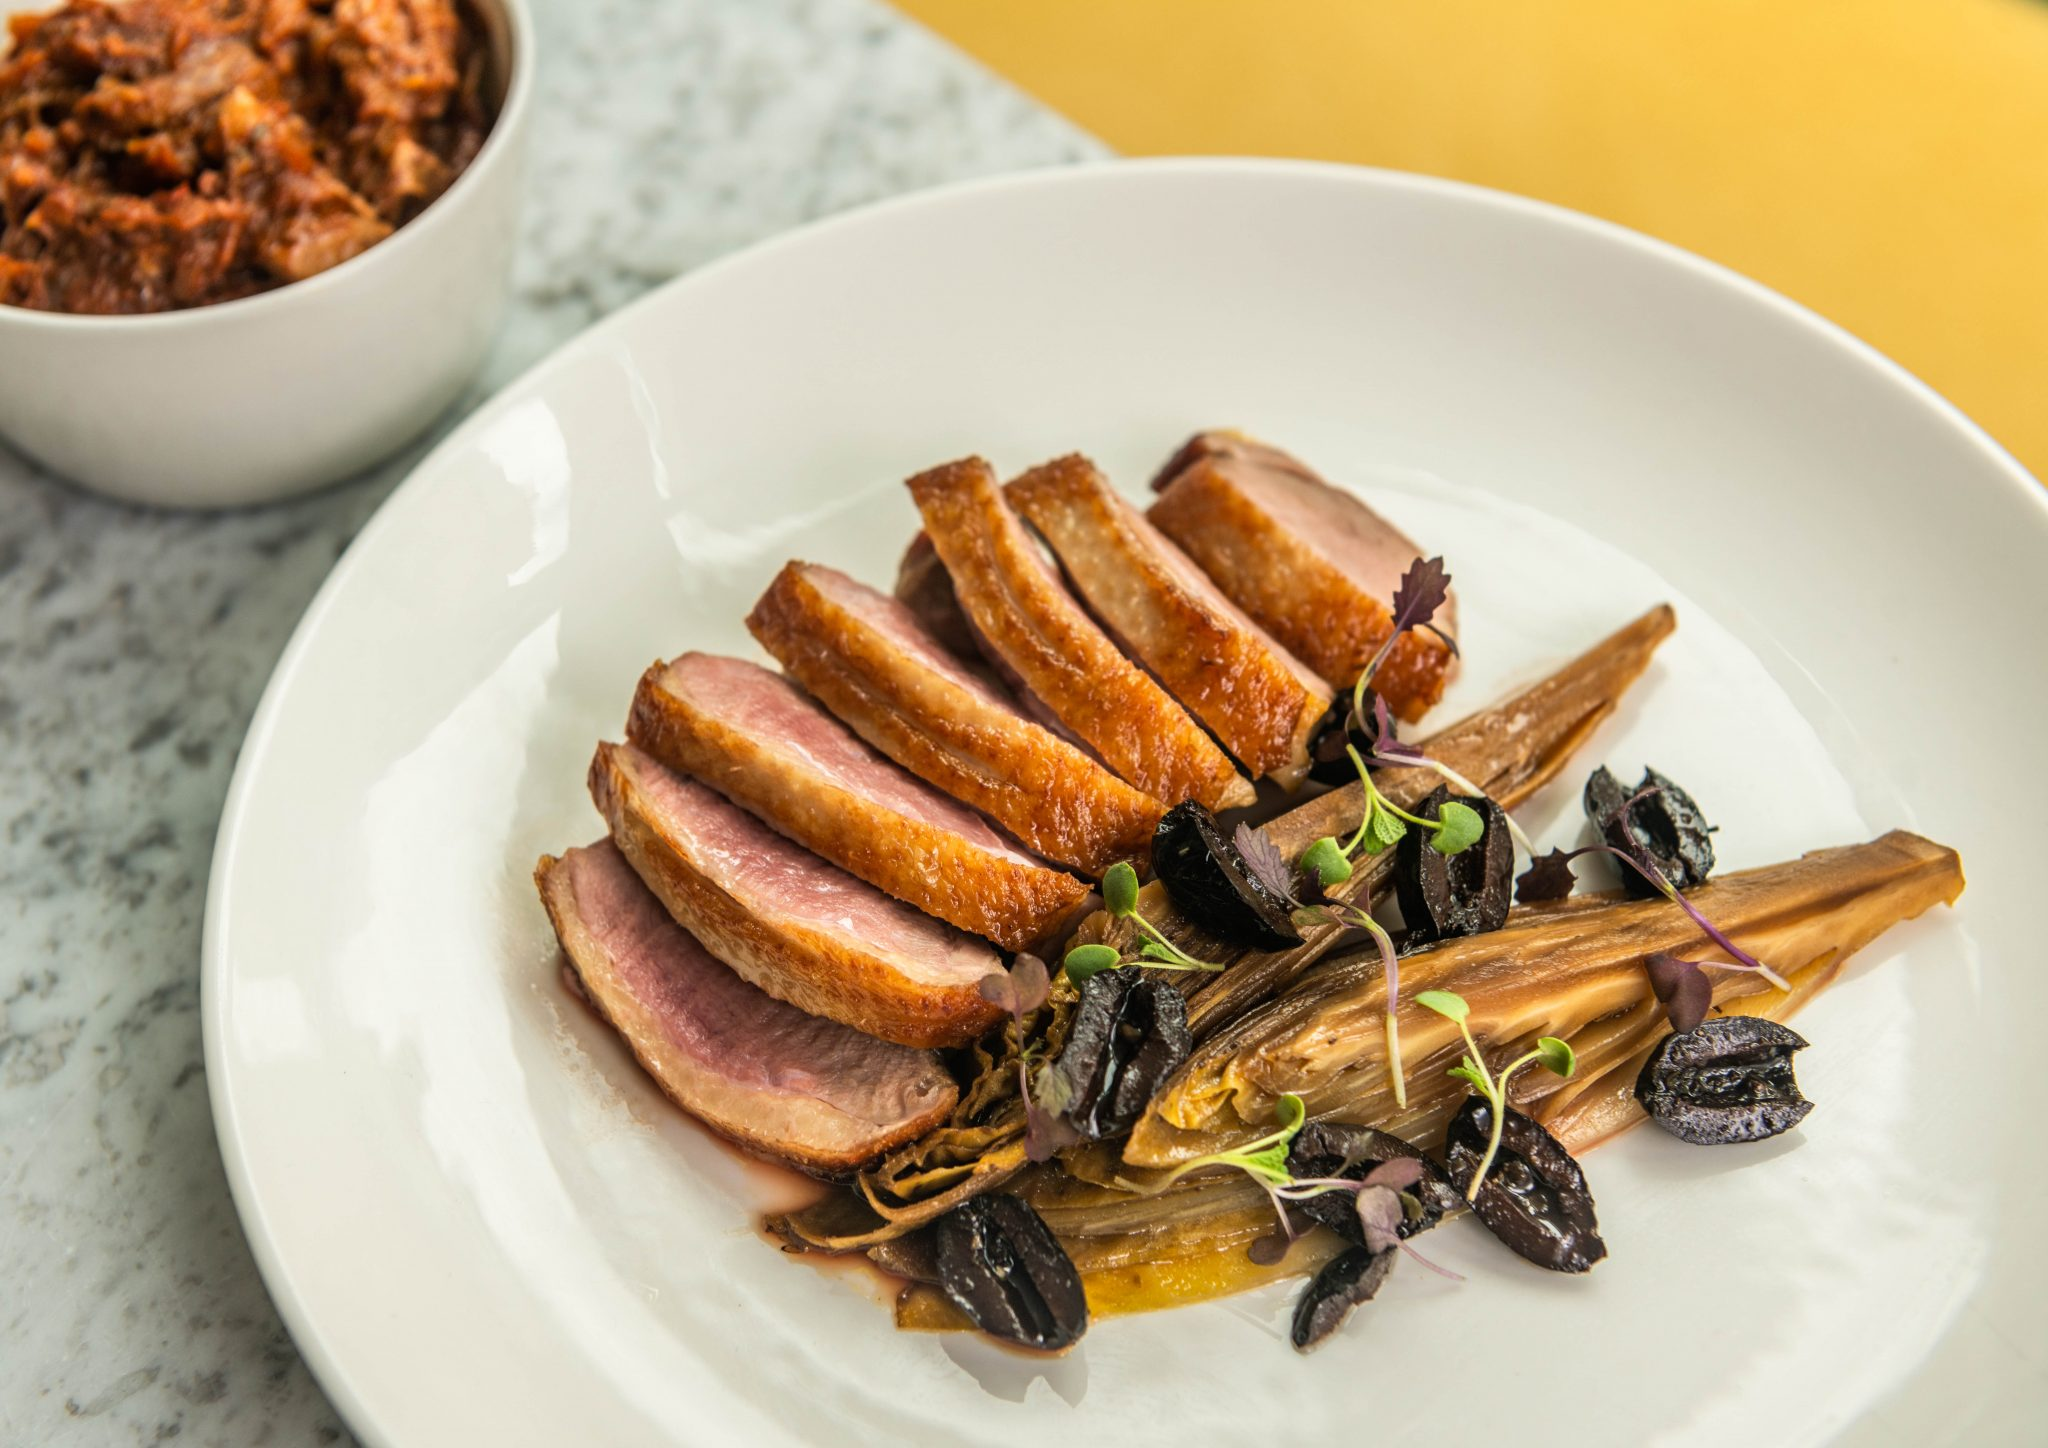 duck London Food and Drink Photography - LIV Restaurant Sloane Square | Photo: Nic Crilly-Hargrave